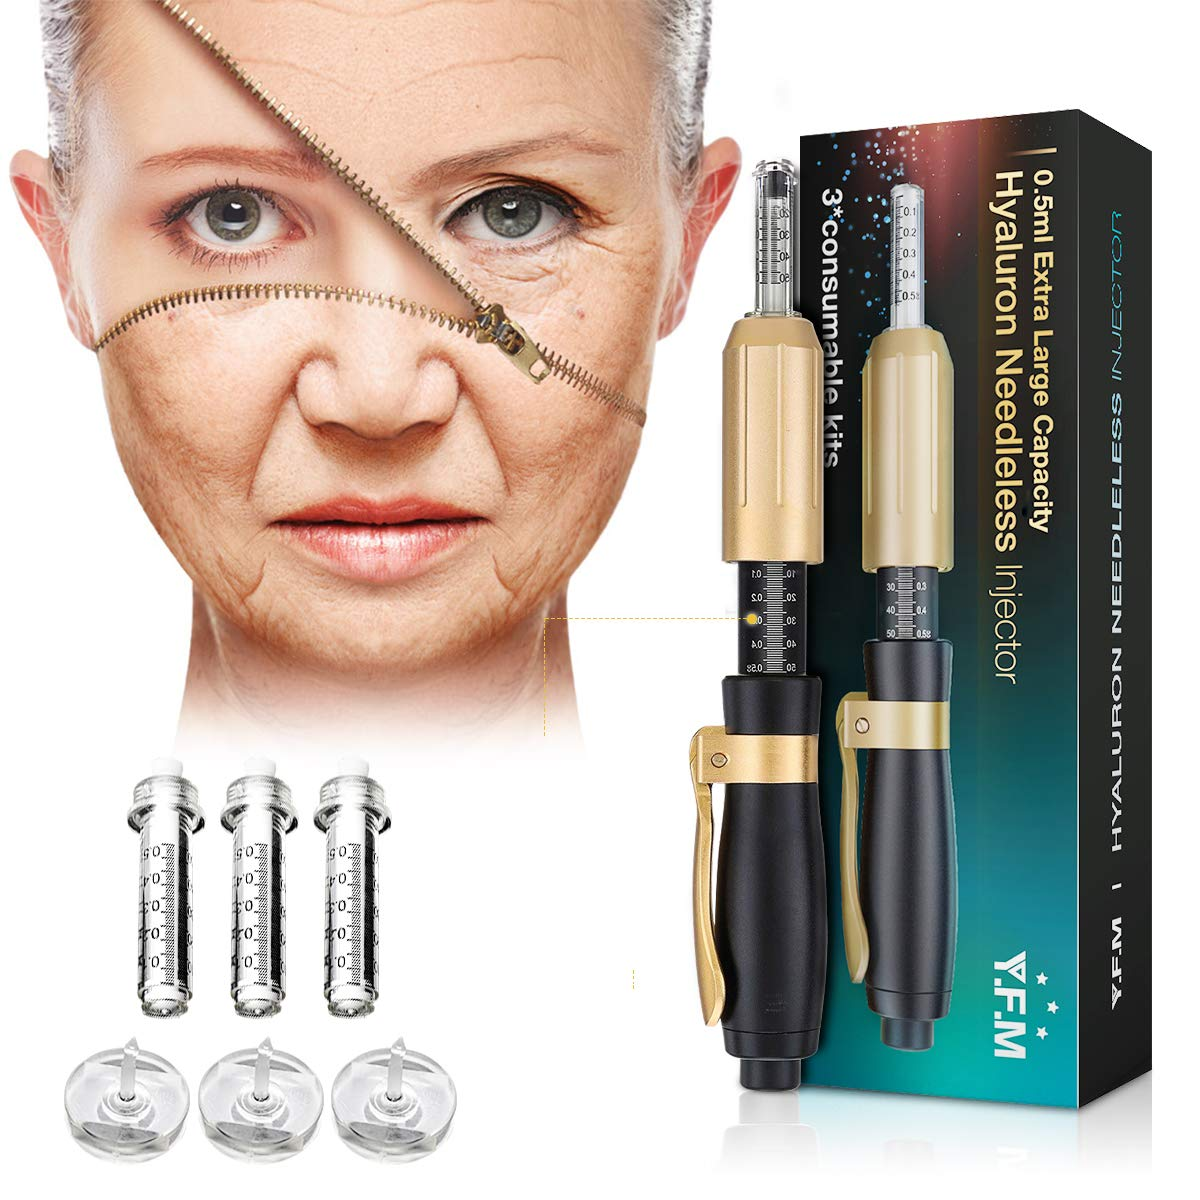 Hyaluron Pen, YFM Hyaluron Pen with 3pcs Ampoule Heads, Help to Reduce Blemishes and Wrinkles, Restore Skin Elasticity